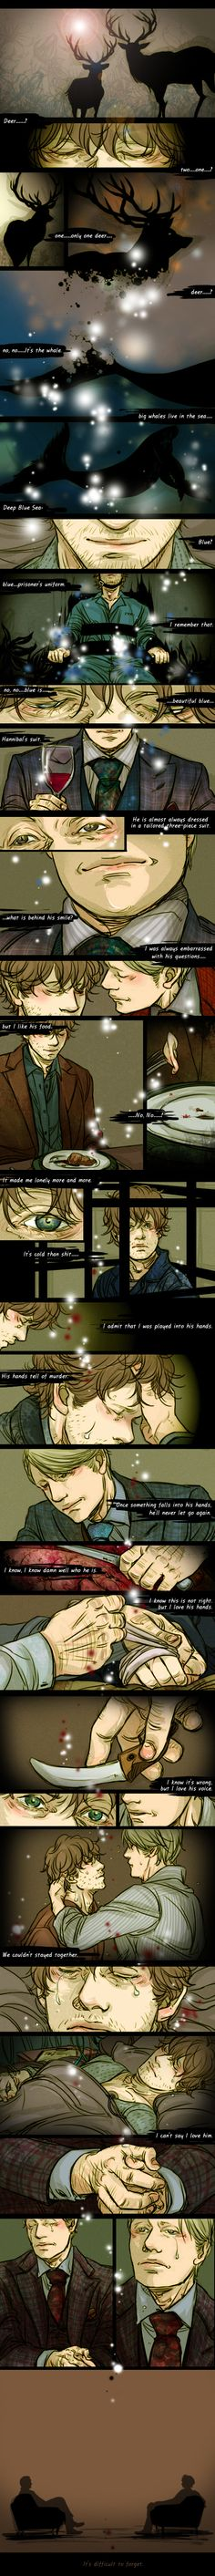 hannigram - tears by young212 this will hunt forever ;-;